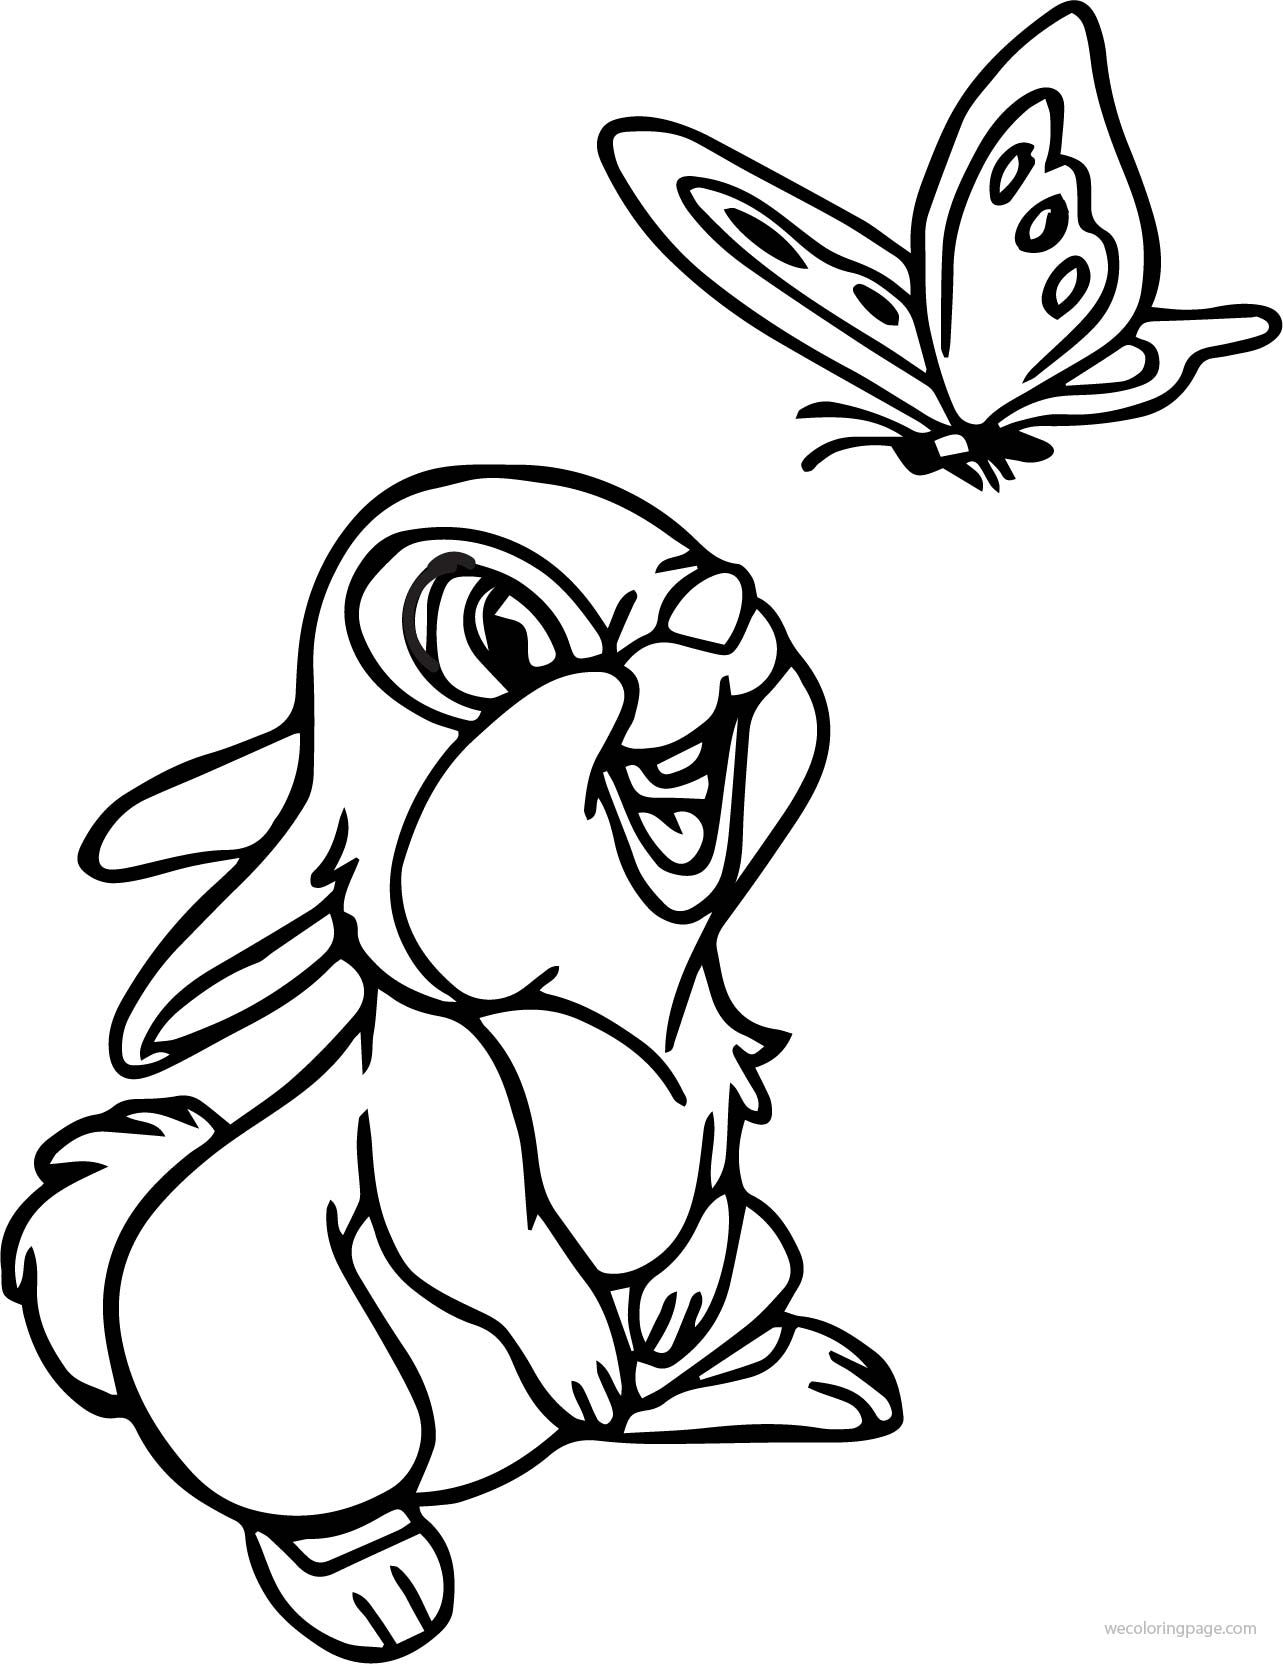 Cool Disney Bambi Thumper Bunny See Butterfly Cartoon Coloring Page Cartoon Coloring Pages Butterfly Coloring Page Bunny Coloring Pages